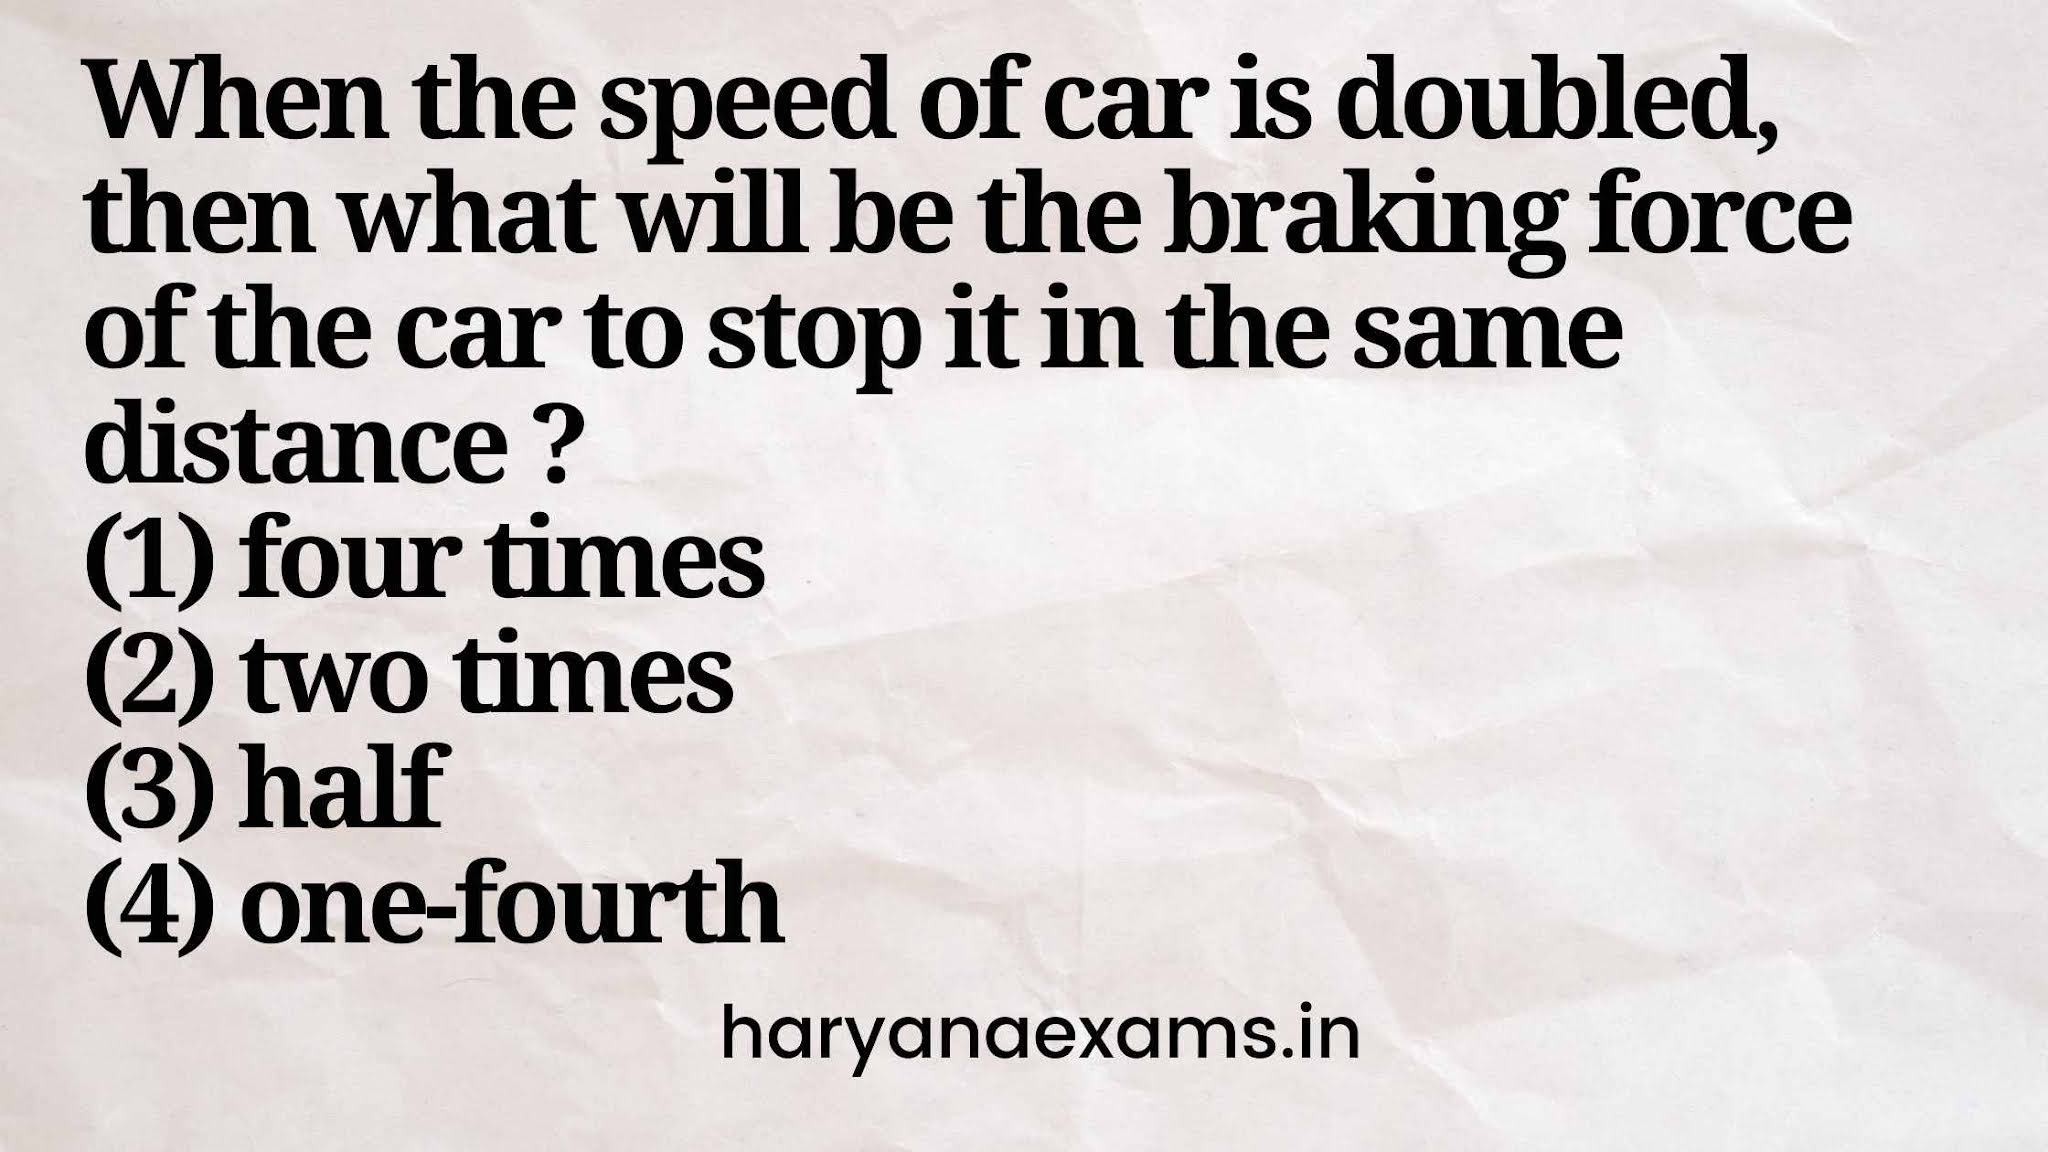 When the speed of car is doubled, then what will be the braking force of the car to stop it in the same distance ?